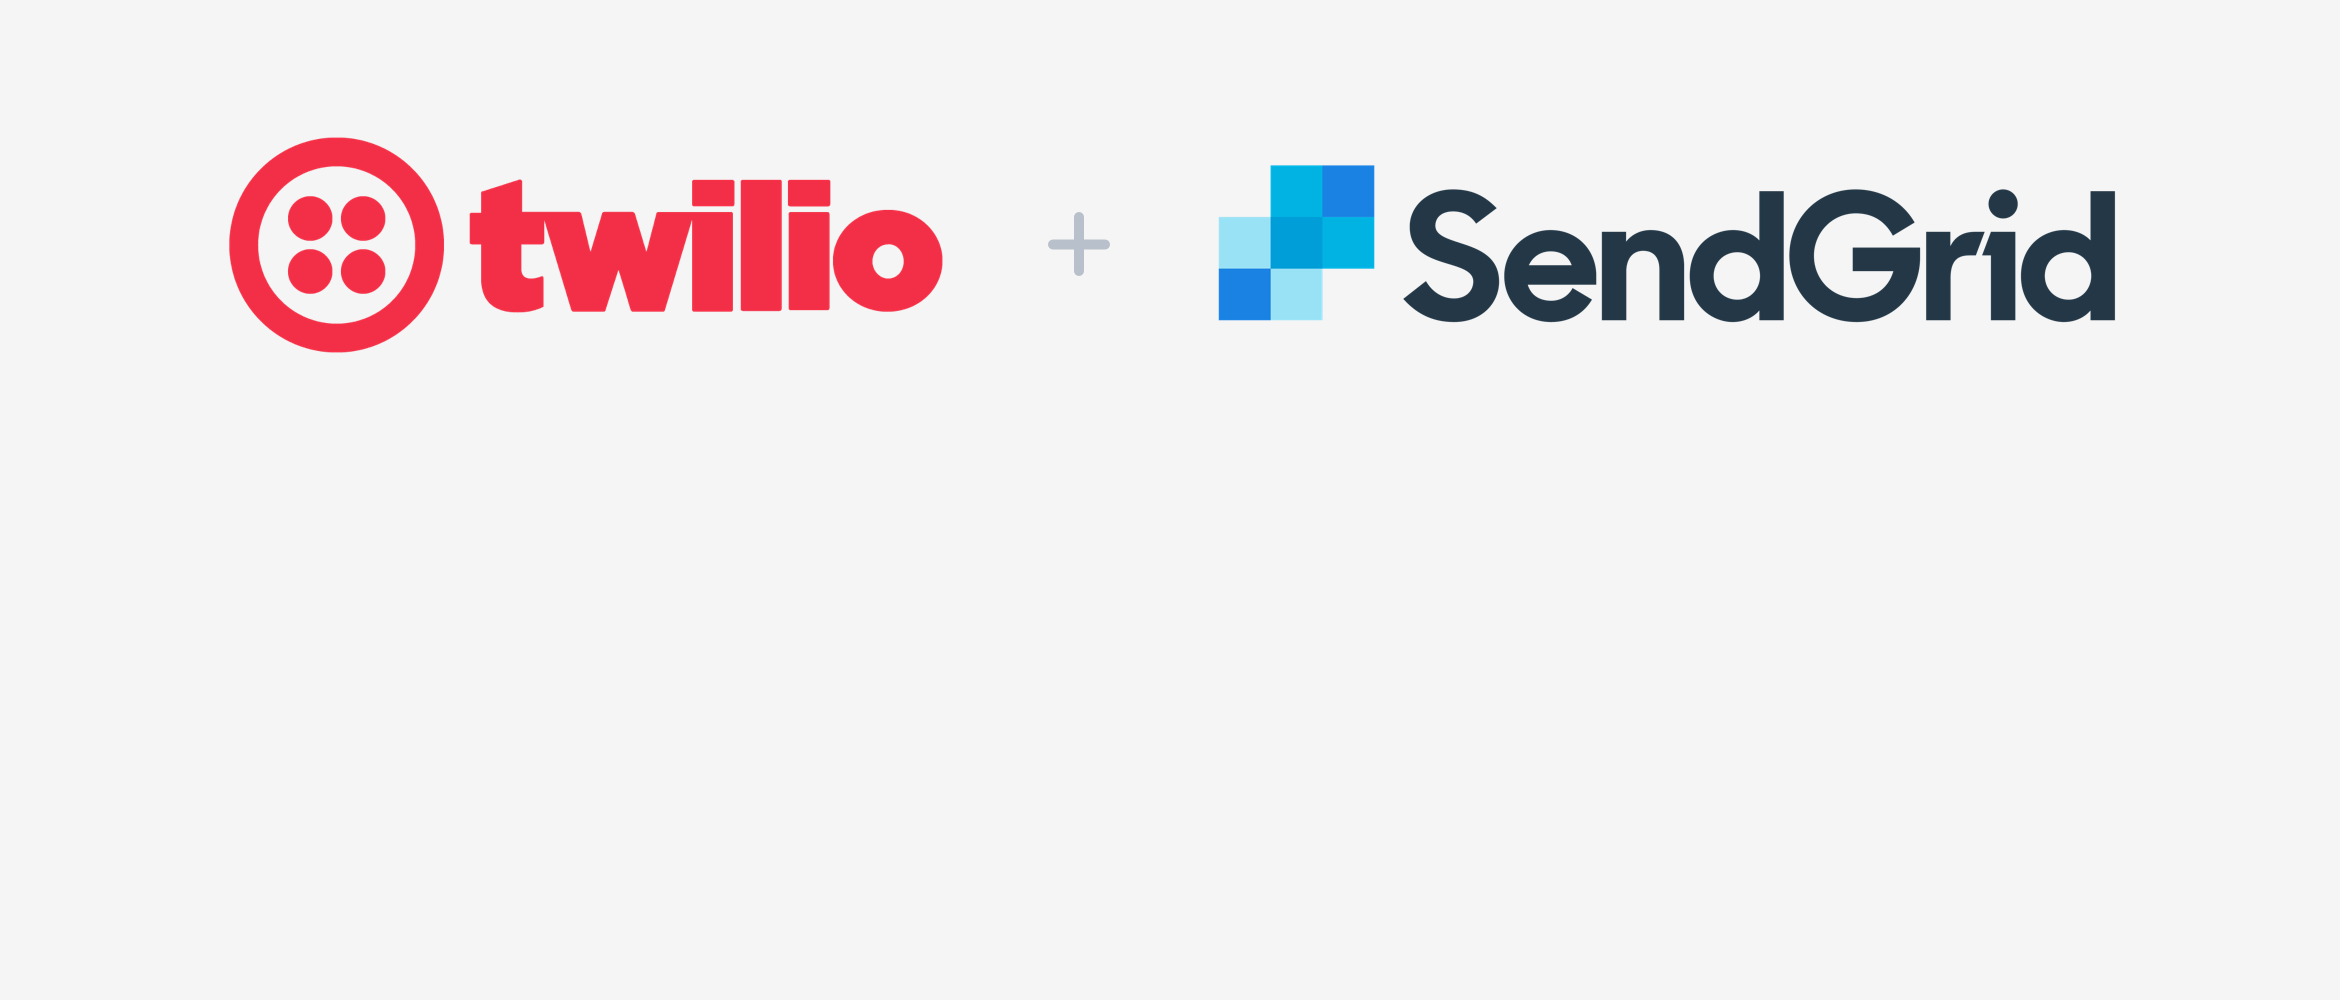 Twilio Signs Definitive Agreement to Acquire SendGrid